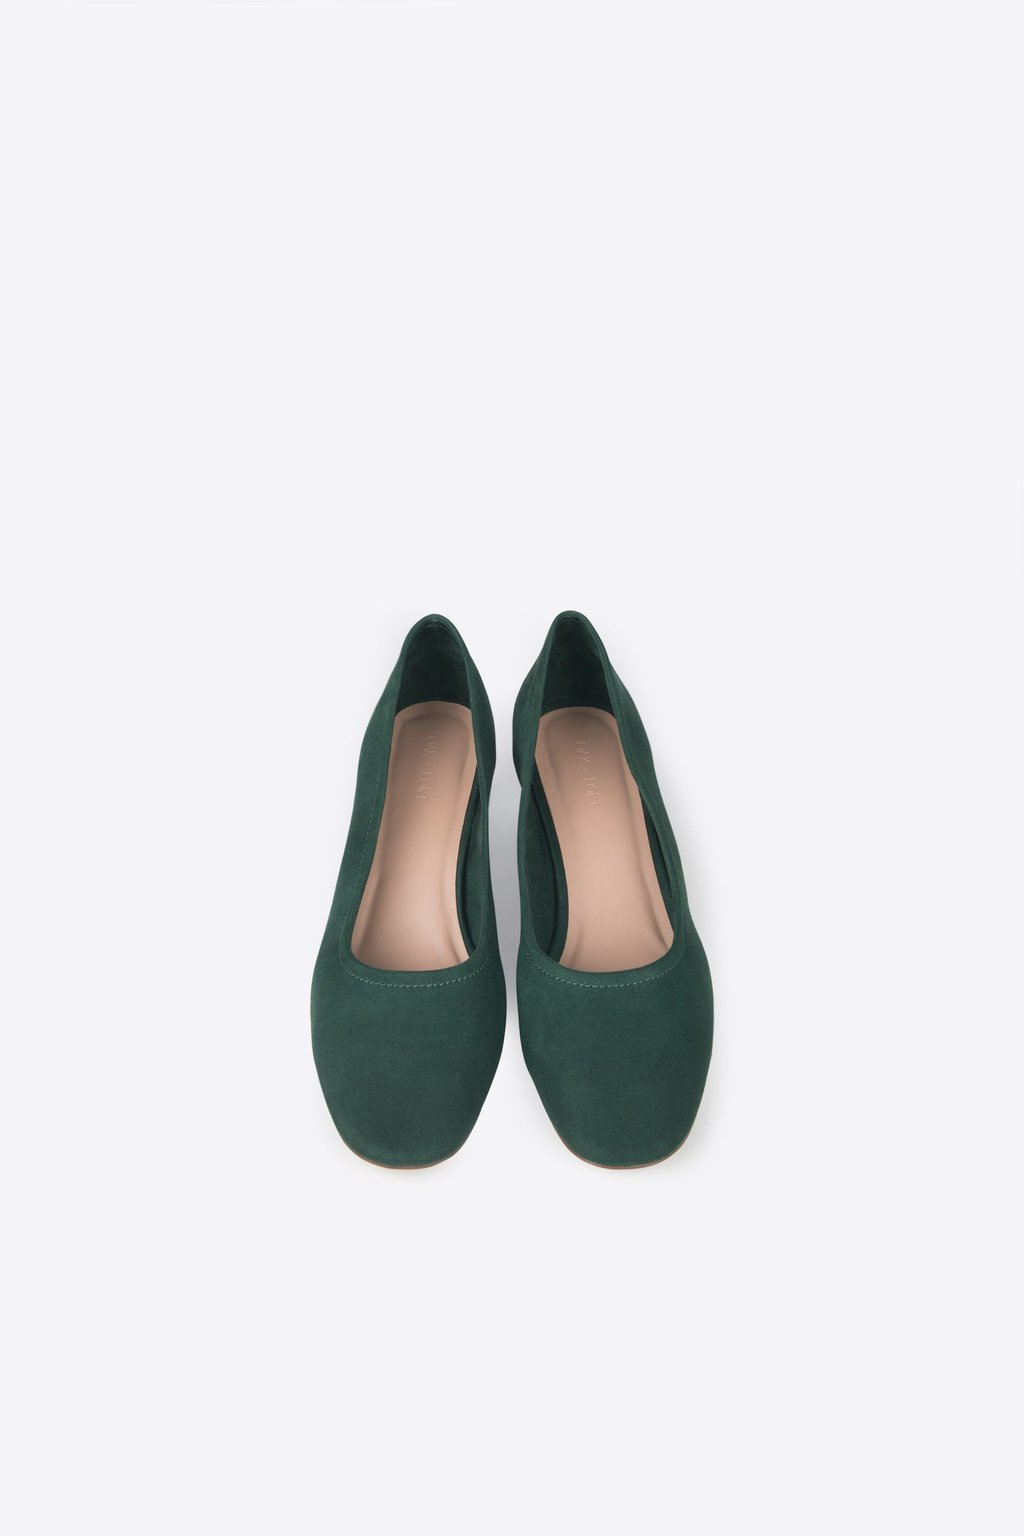 Block Heel 1896 Forest Green 7